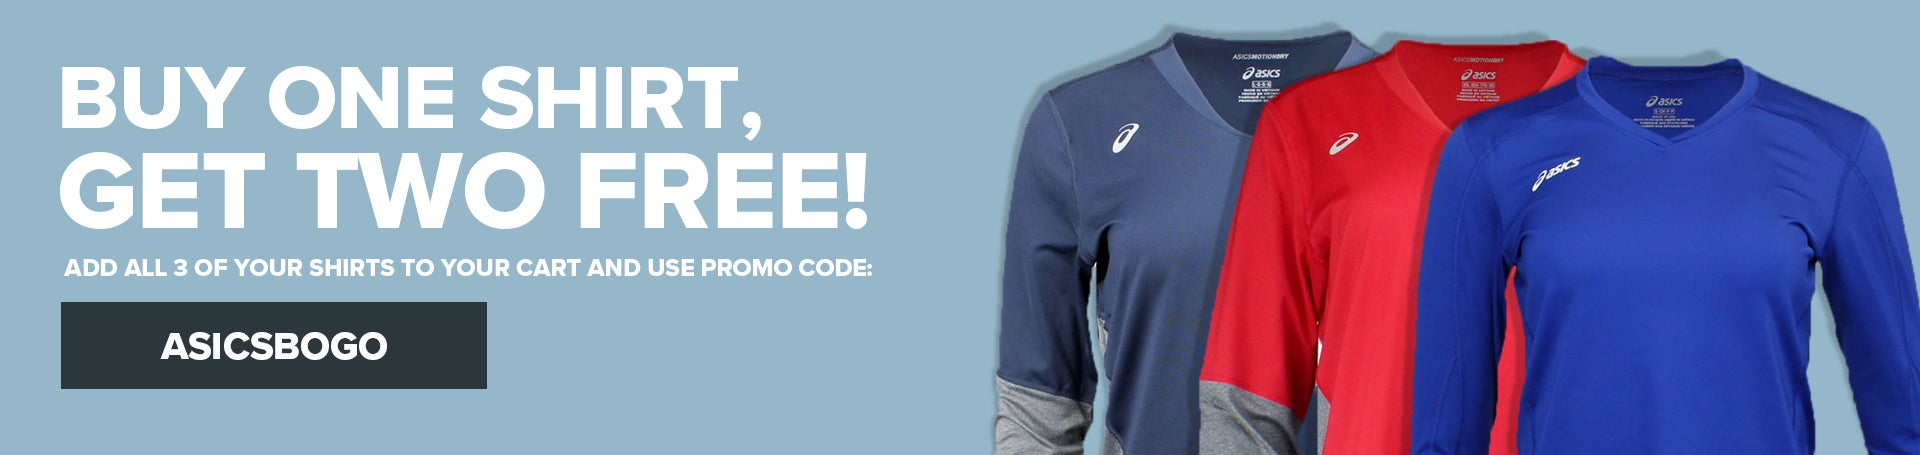 BUY ONE SHIRT, GET TWO FREE! PUT ALL 3 SHIRTS INTO YOUR CART AND USE PROMO CODE: ASICSBOGO